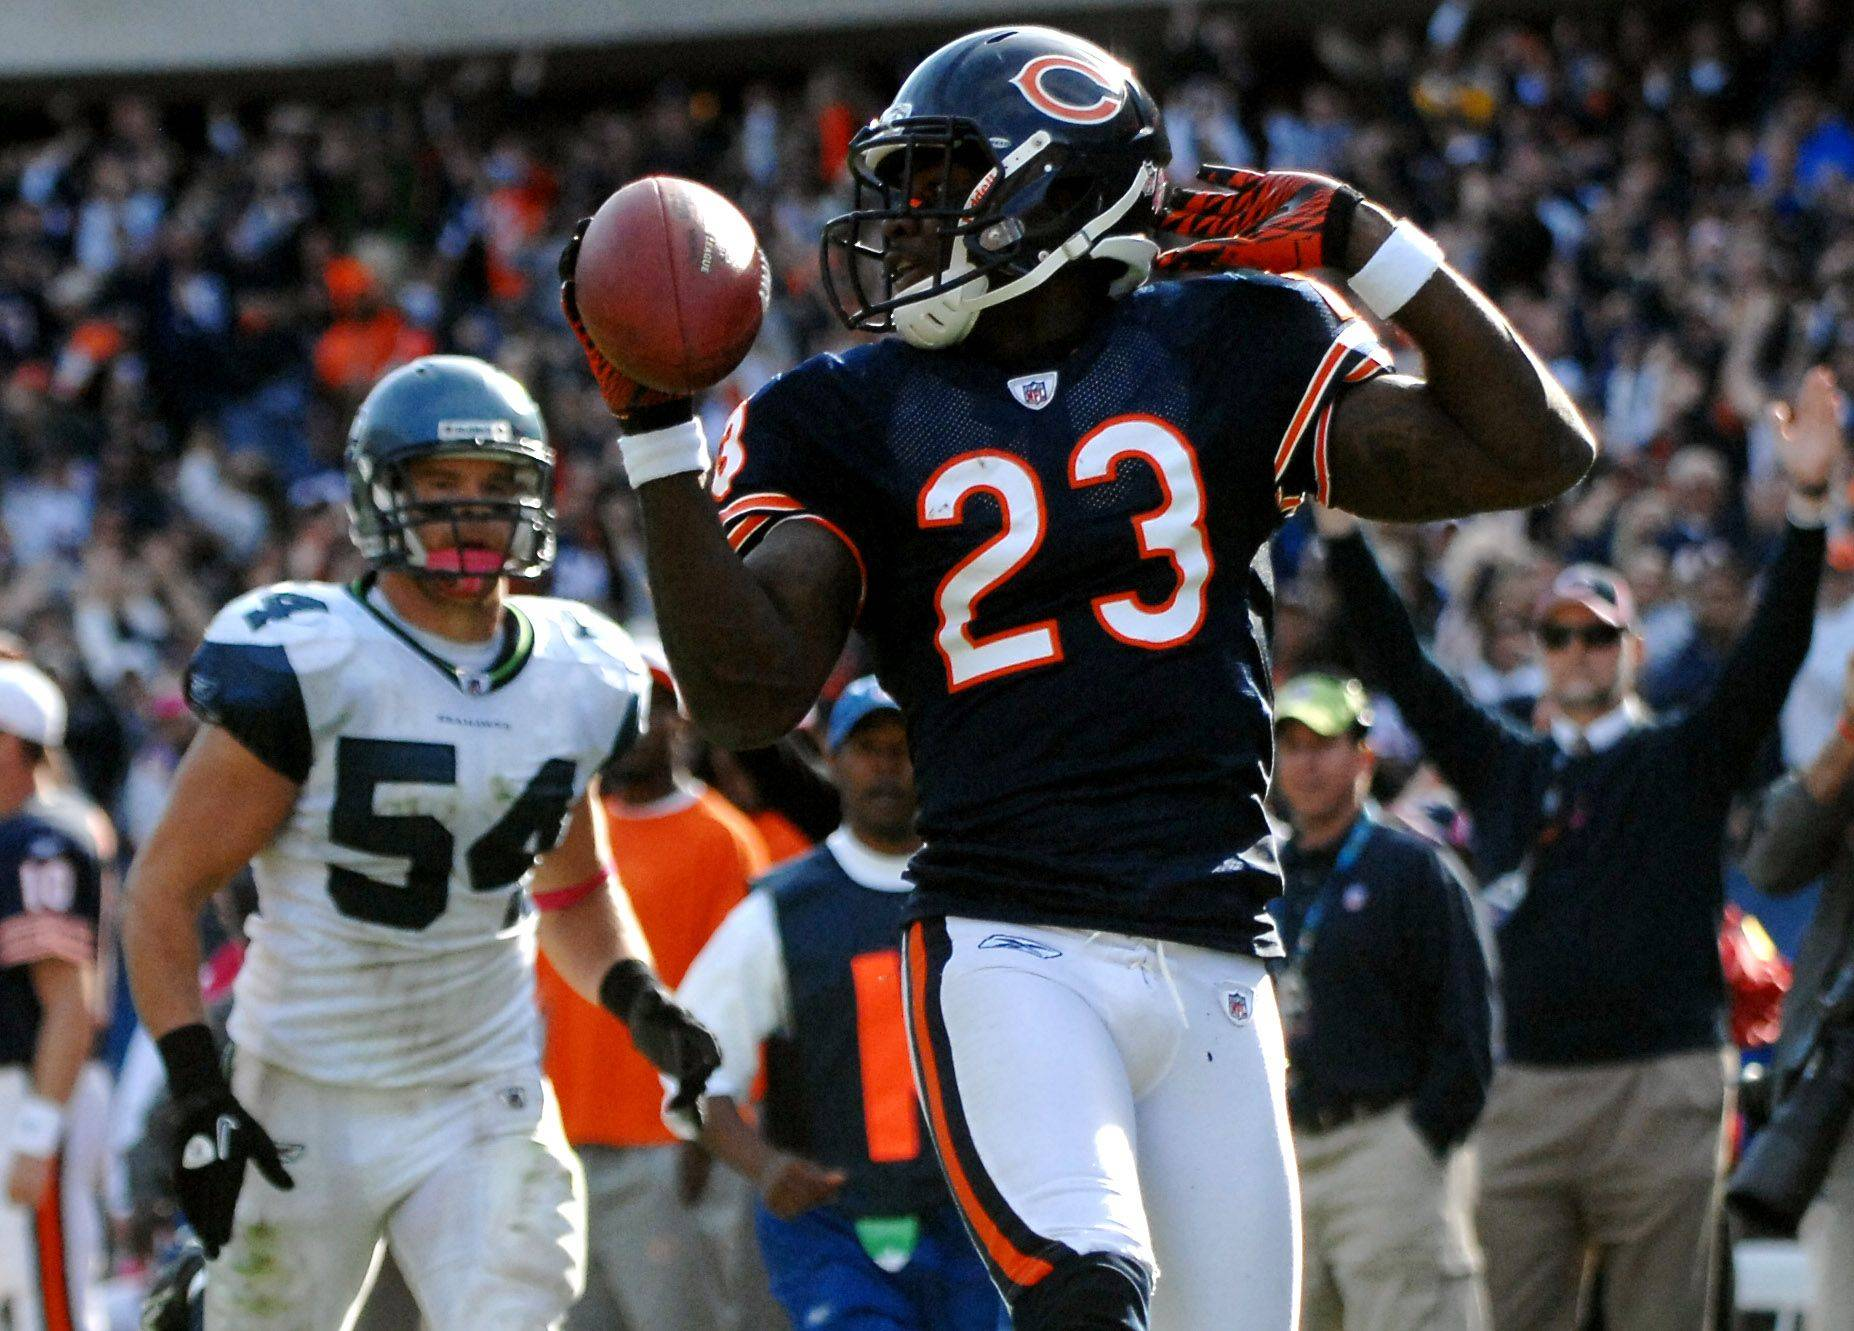 Chicago Bears returner Devin Hester ties the all time record for punt returns for touchdown during the 4th quarter of Sunday's game at Soldier Field in Chicago.